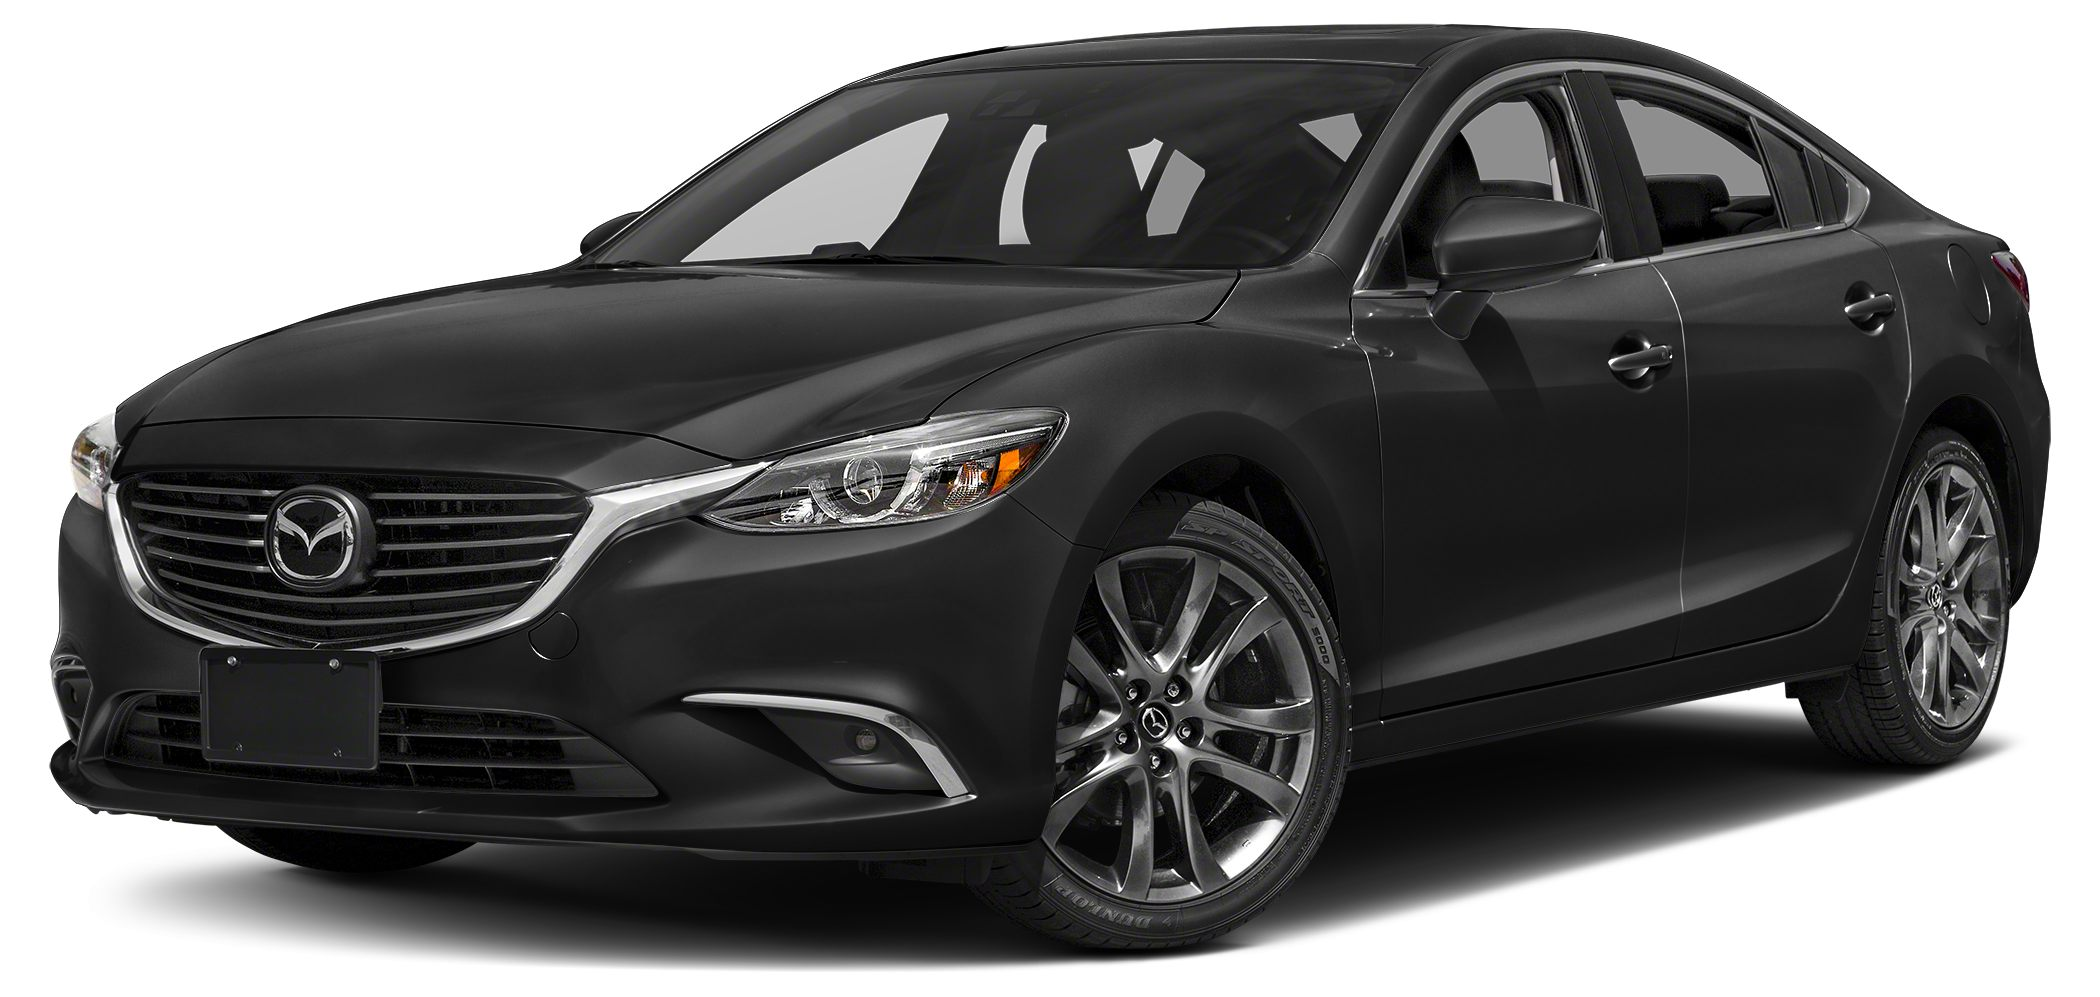 2016 Mazda MAZDA6 i Grand Touring Jet Black Mica 2016 Mazda Mazda6 i Grand Touring FWD 6-Speed Aut